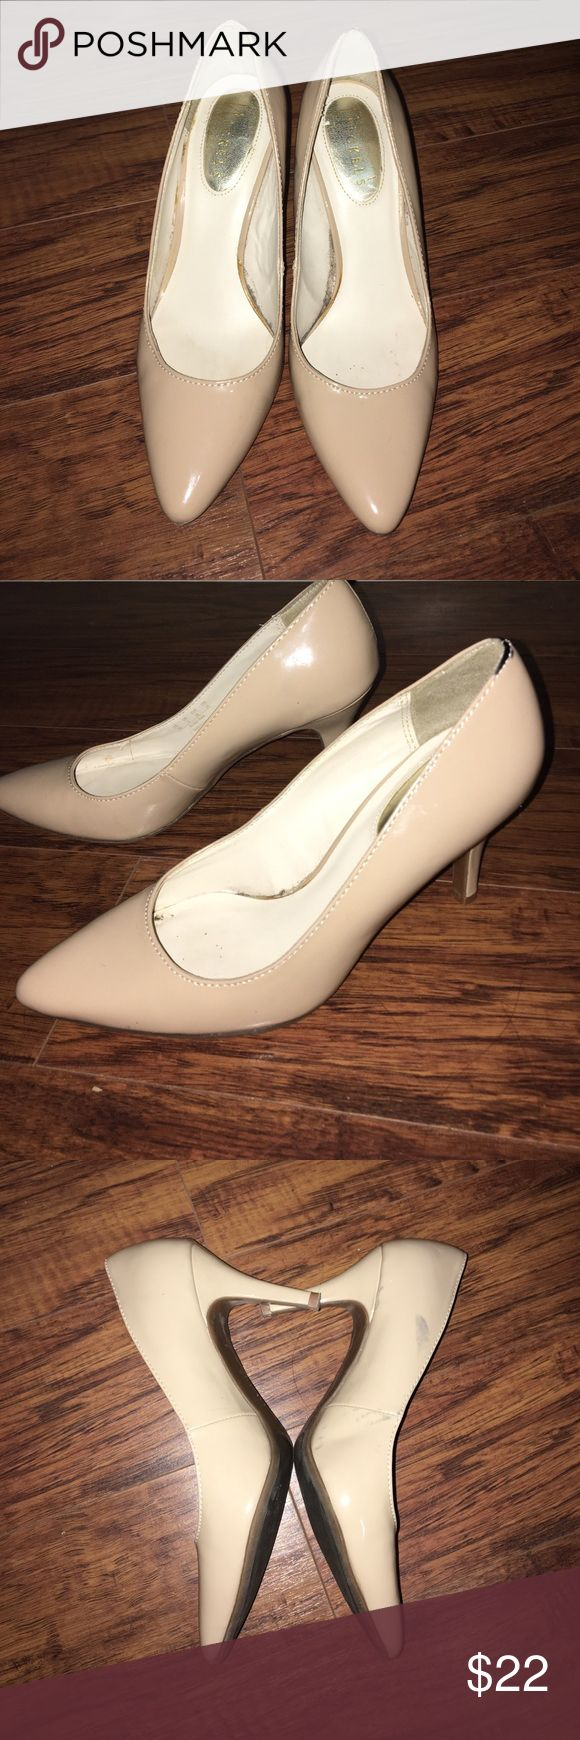 "NICKELS ""DOROTHY"" SAND NUDE BEIGE PUMPS SHOES Great nude shoes. In very good condition. Super comfortable. Has a few stains. Not so noticeable. Nickels Shoes Heels"